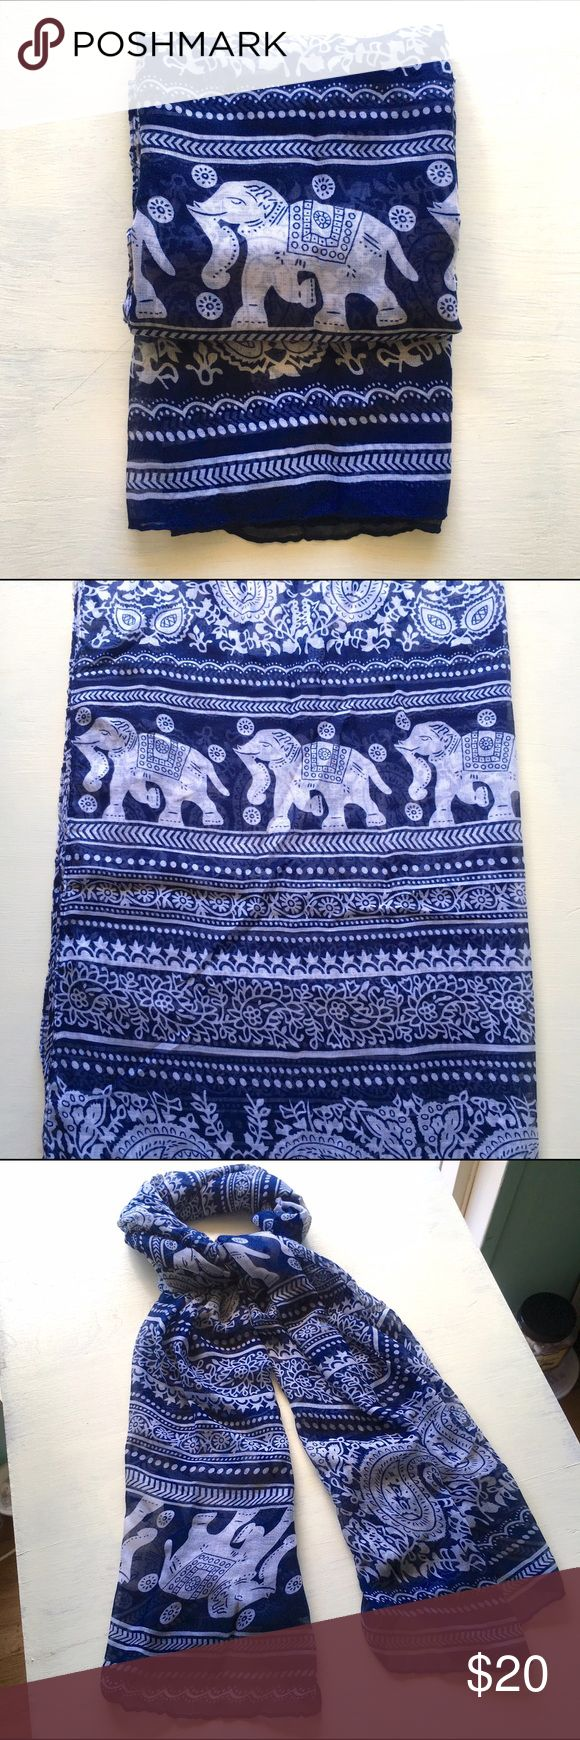 Scarf/Wrap/Swimsuit Cover-Up, Sheer Paisley BLUE NWT Over-sized Scarf or Medium-size Swim Beach Wrap Cover-Up (sarong, lava lava, pareo)--slightly Sheer Paisley Elephant Print--NAVY BLUE and White. Soft and beautiful. Measurements: about 72x33.5 inches. Mermaid Bliss Boutique  Accessories Scarves & Wraps